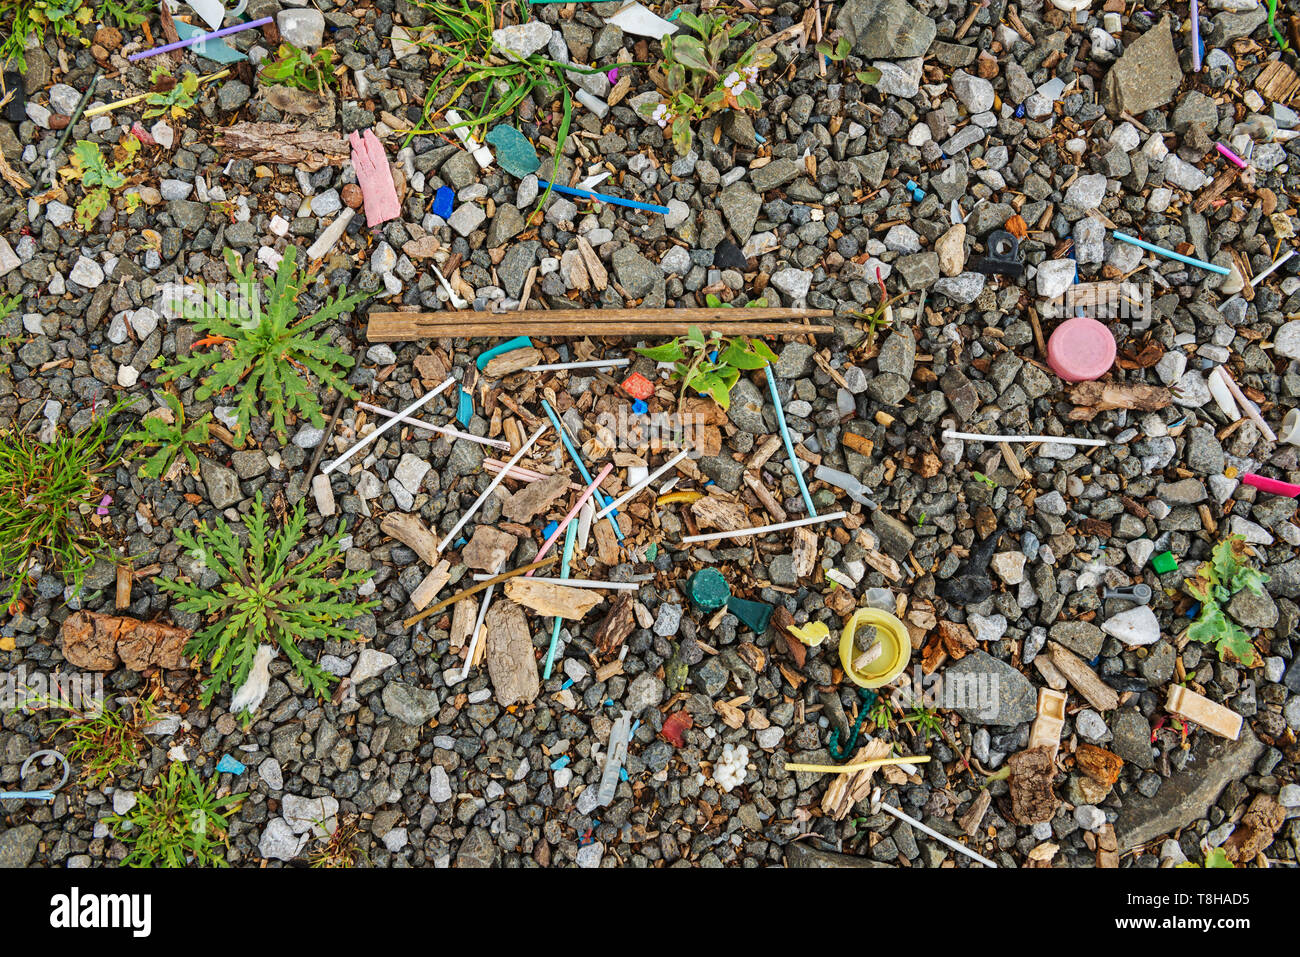 Garbage on the beach near the big city. Used dirty plastic sticks and other garbage. Environmental pollution. - Stock Image